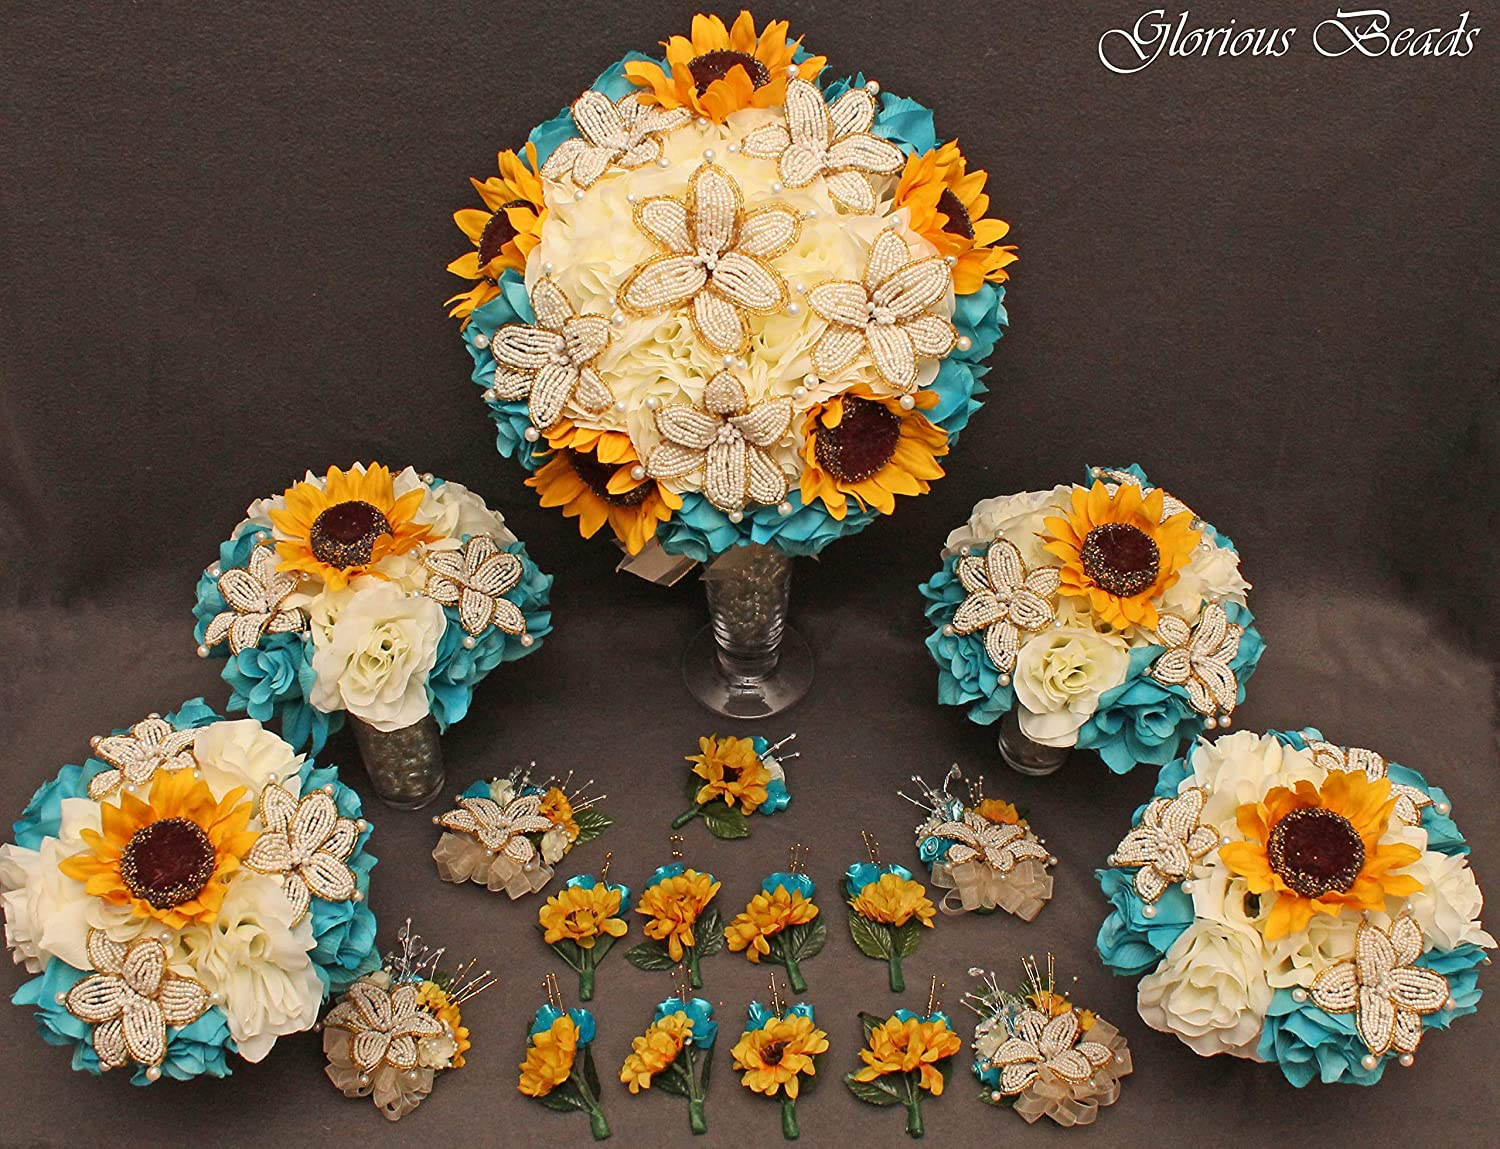 Teal, Turquoise,and Yellow Sunflower Bridal Bouquets Wedding Flower 18  piece package with BEADED LILIES and silk Roses~ Corsages and Boutonnieres.